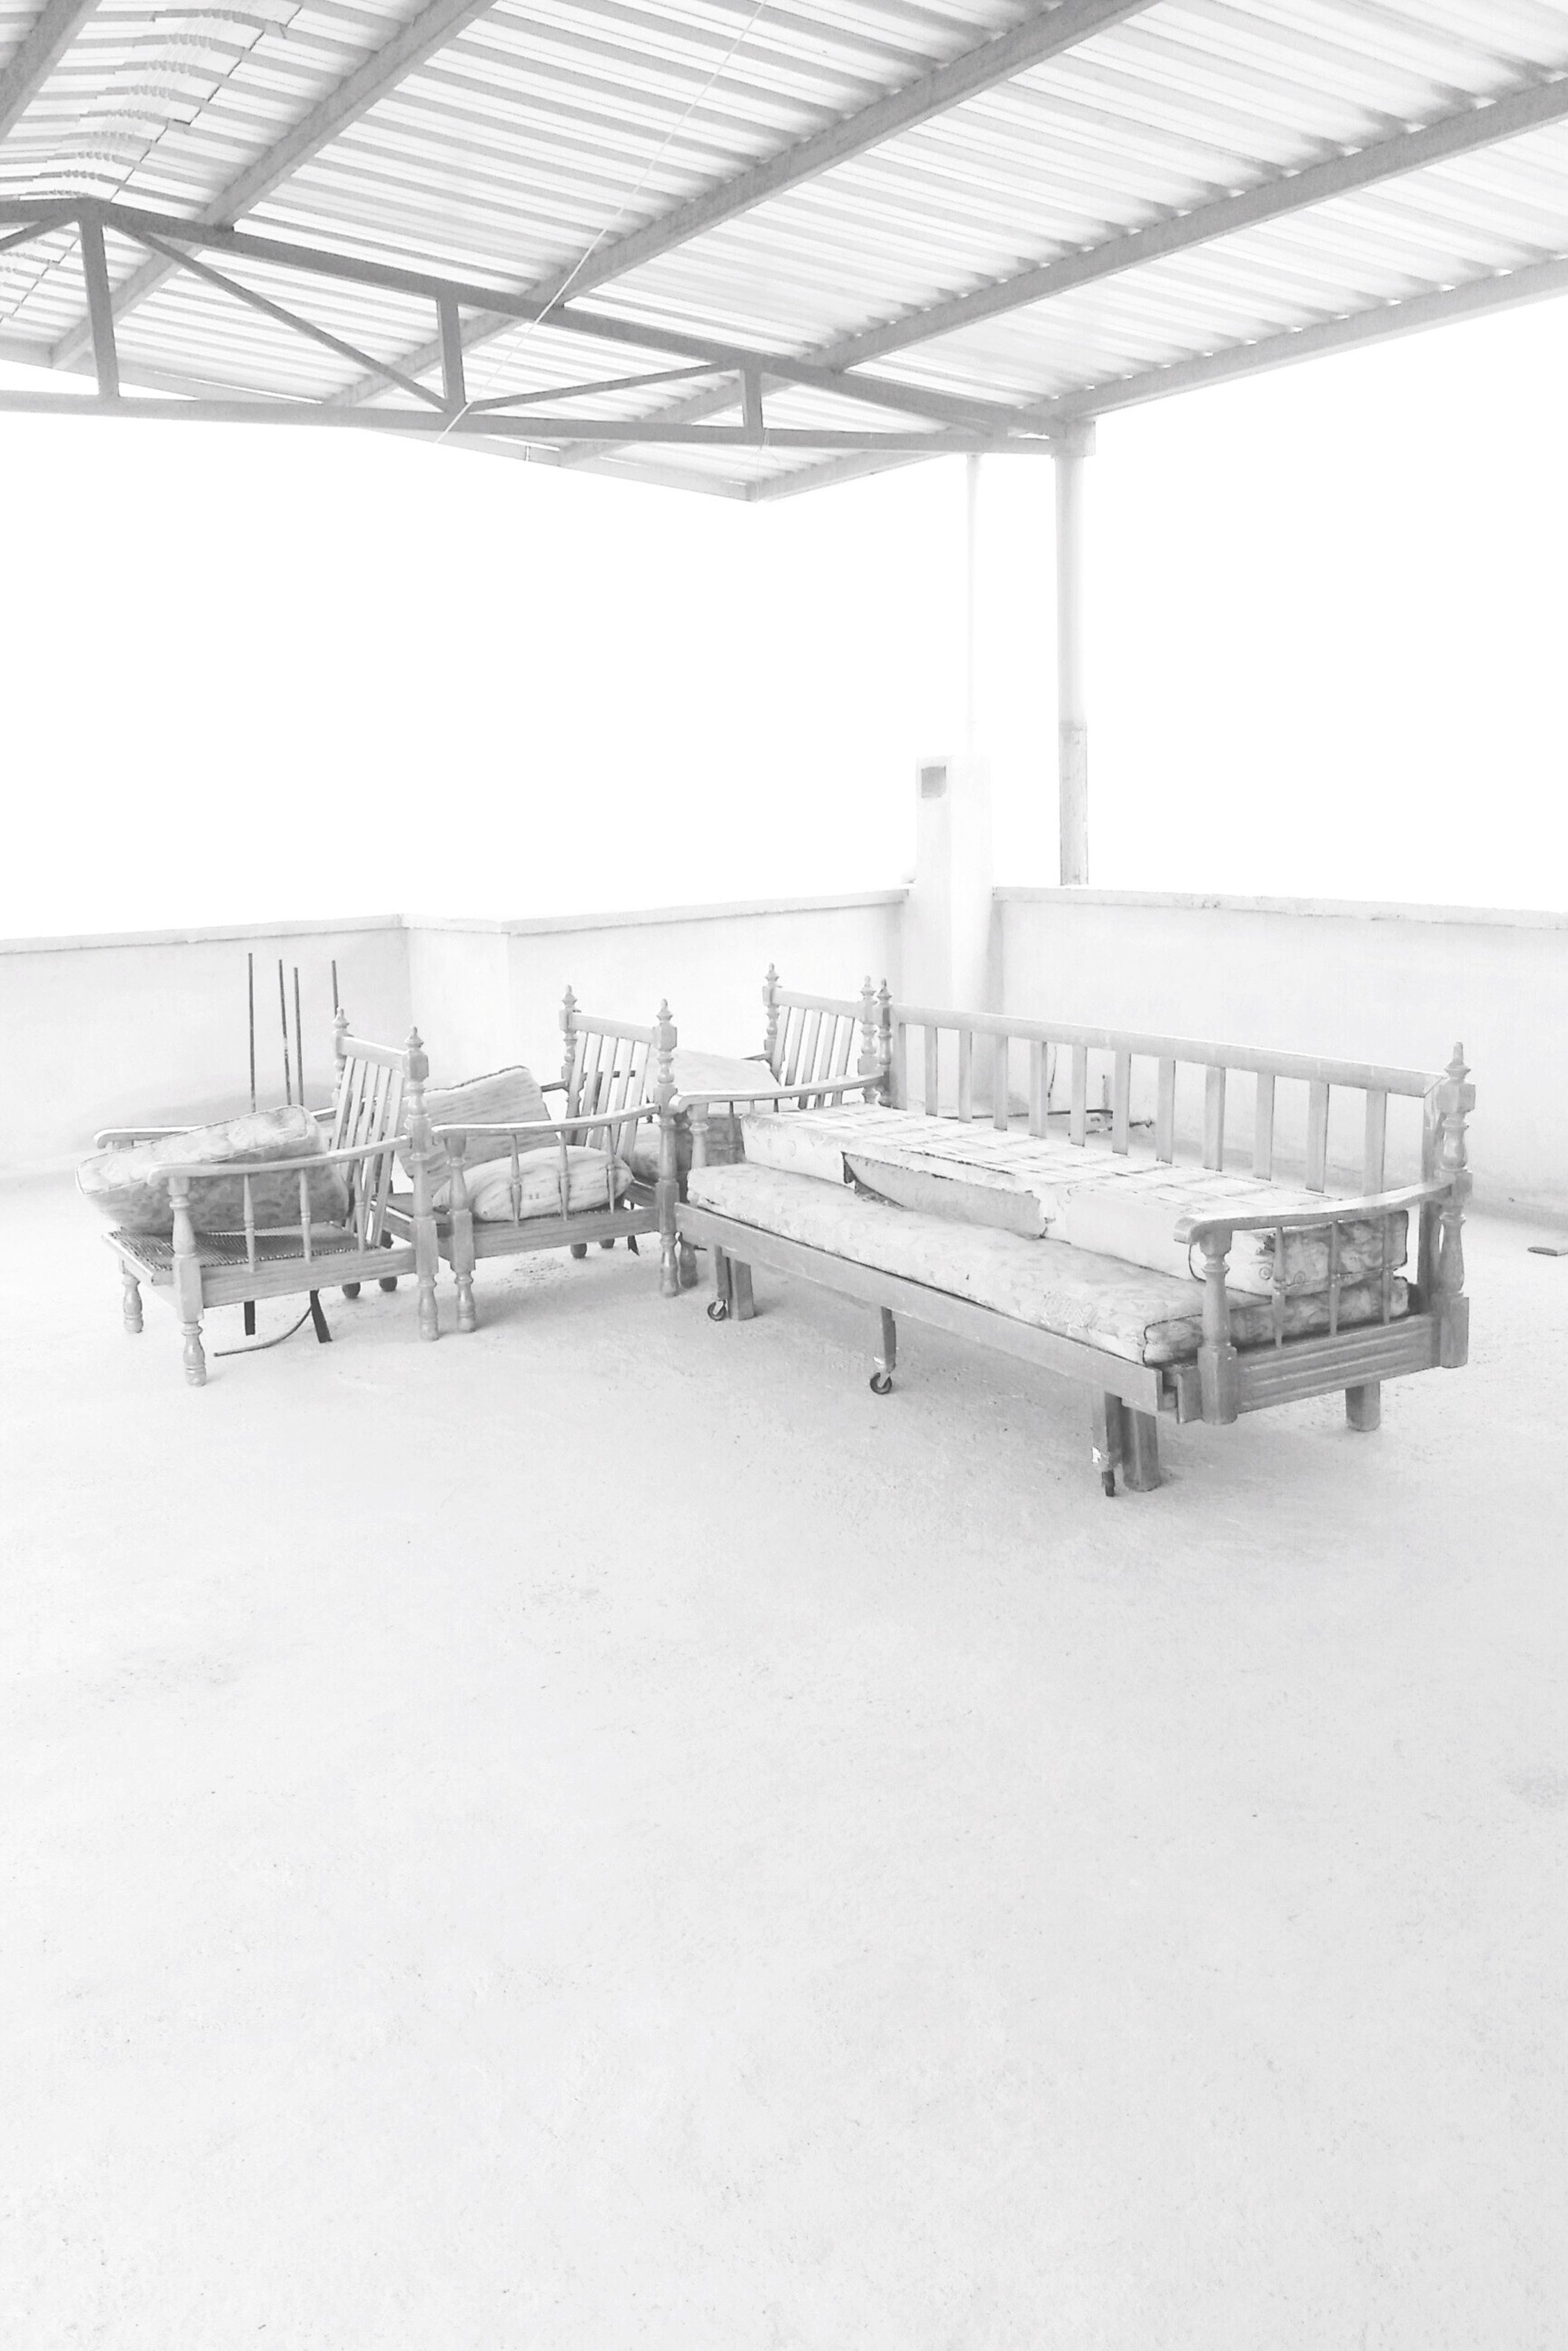 empty, absence, day, in a row, outdoors, seat, nature, no people, tranquility, sky, tranquil scene, arrangement, sunny, side by side